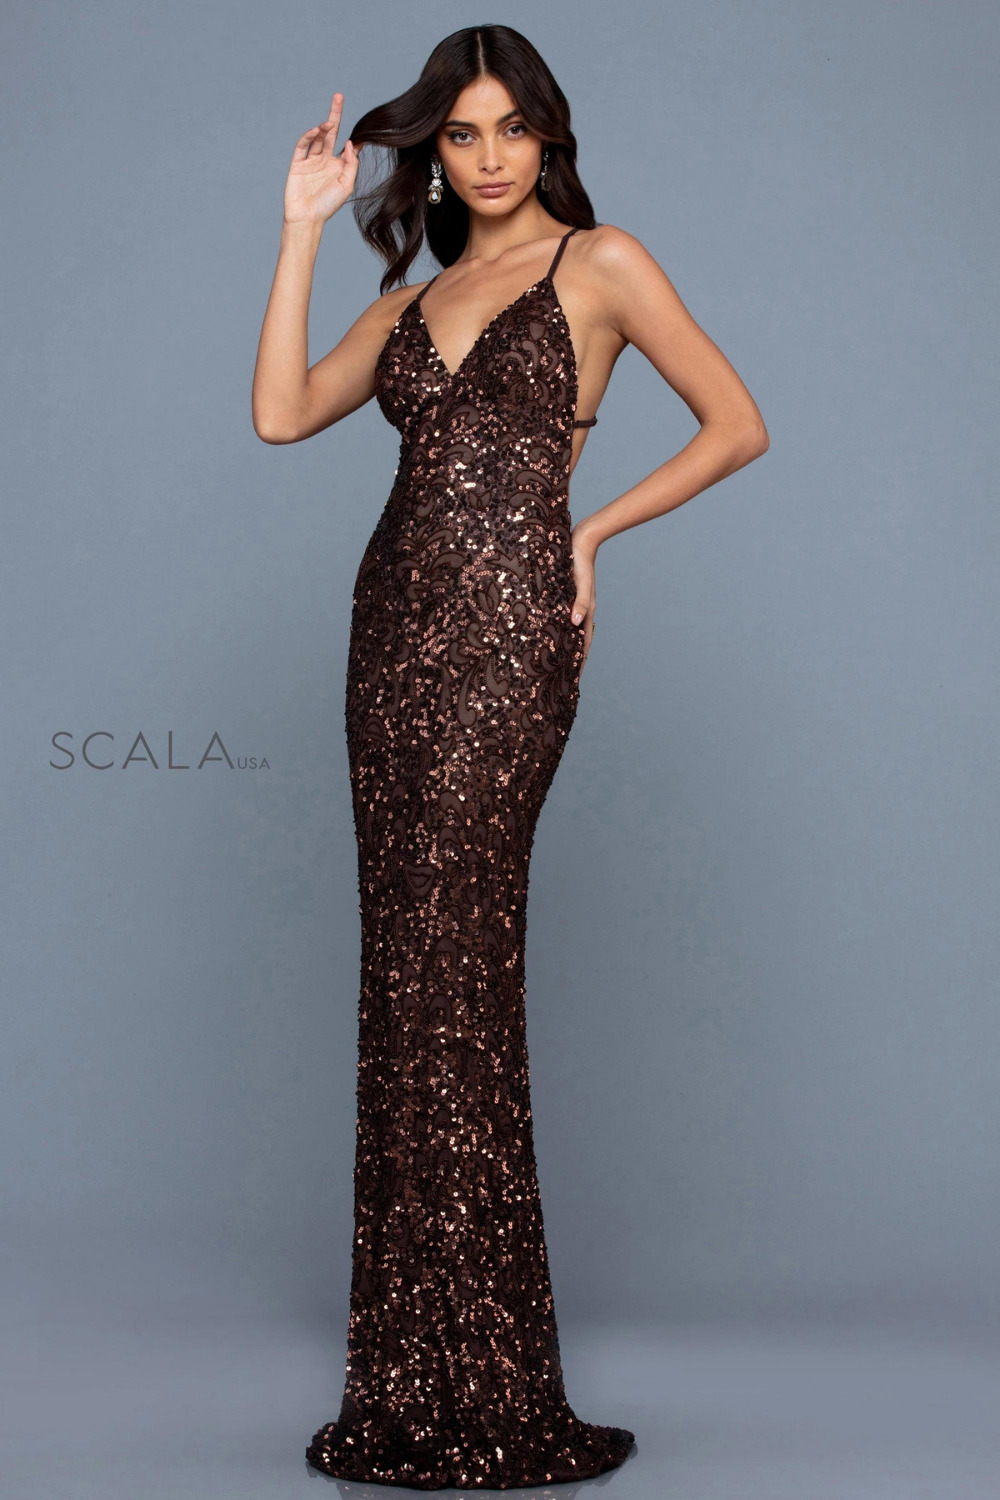 Scala 47542 low back sequin formal dress chocolate brown front